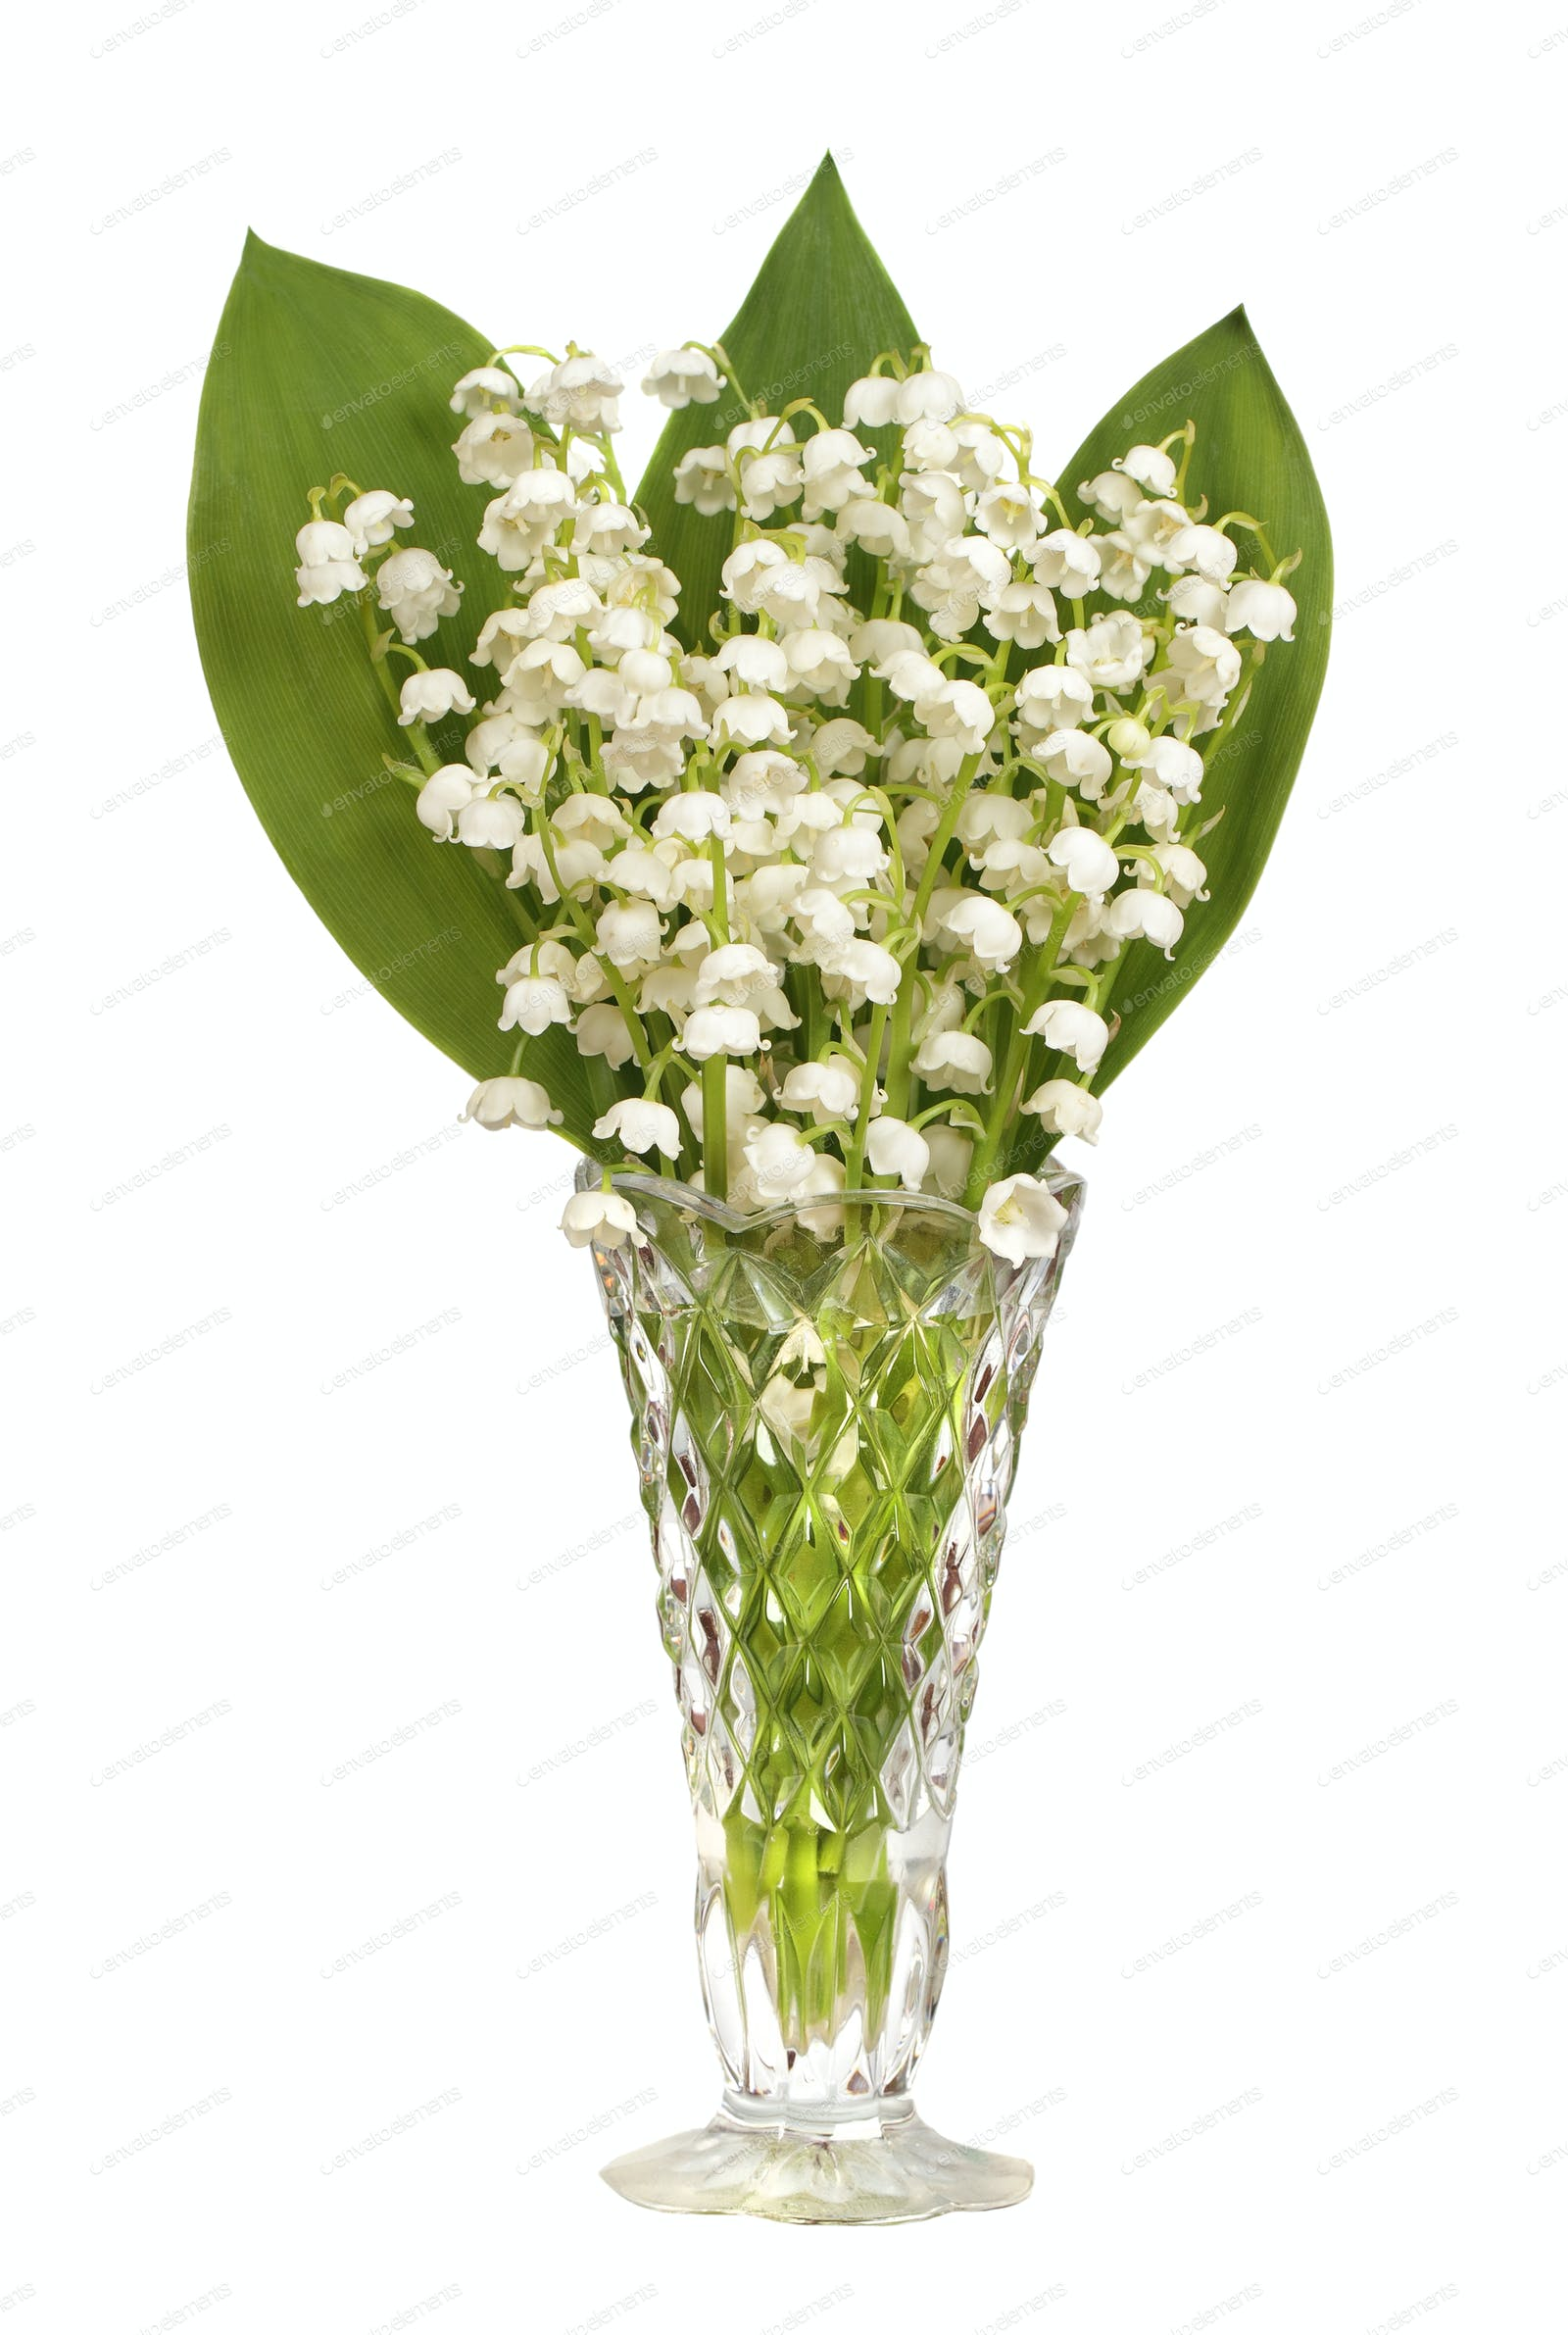 Lily of the valley photo by michalex on envato elements izmirmasajfo